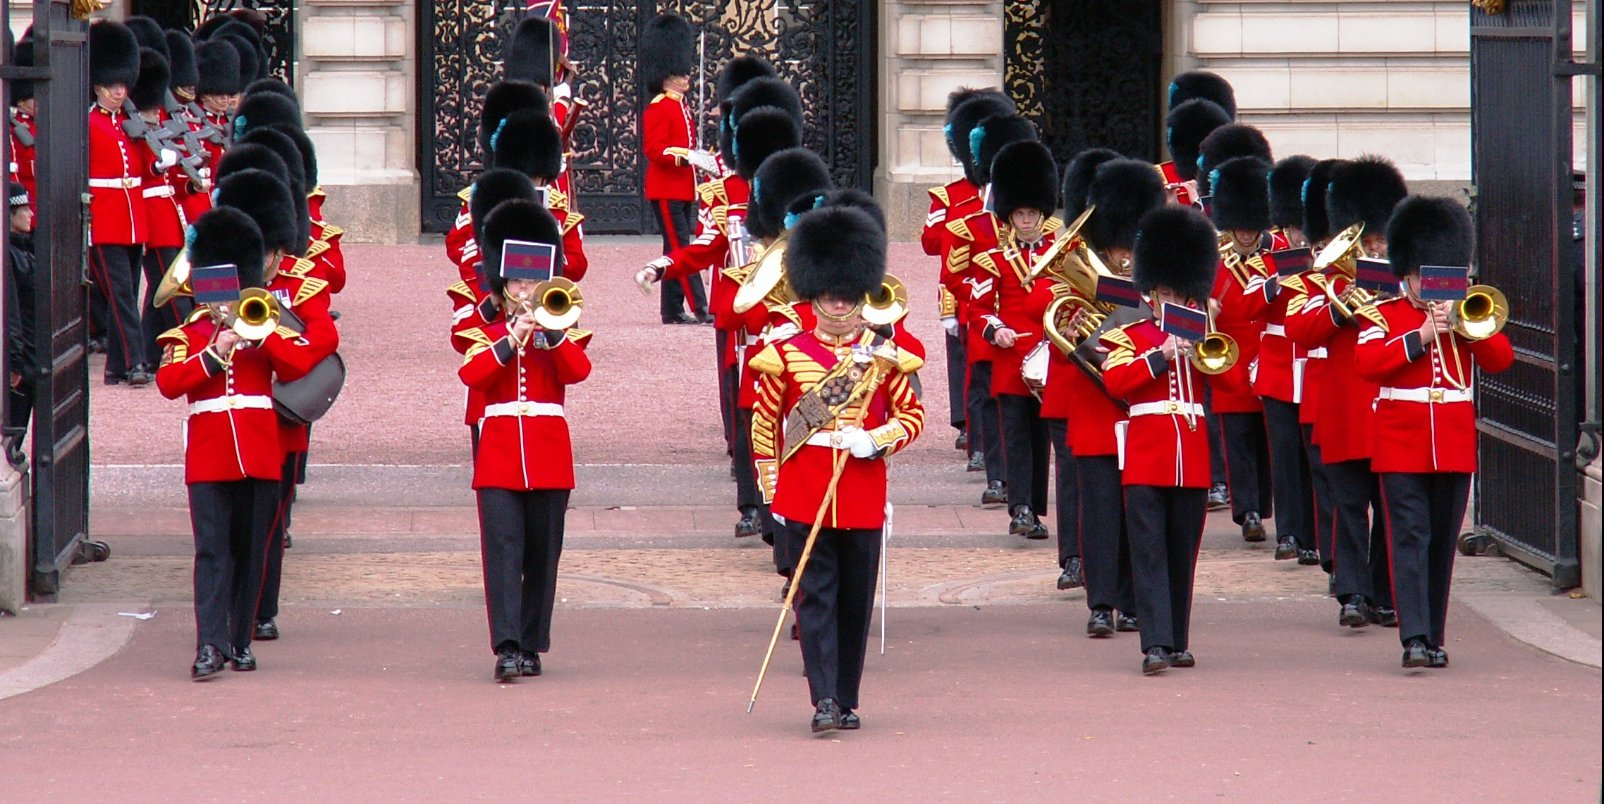 The Parade - London